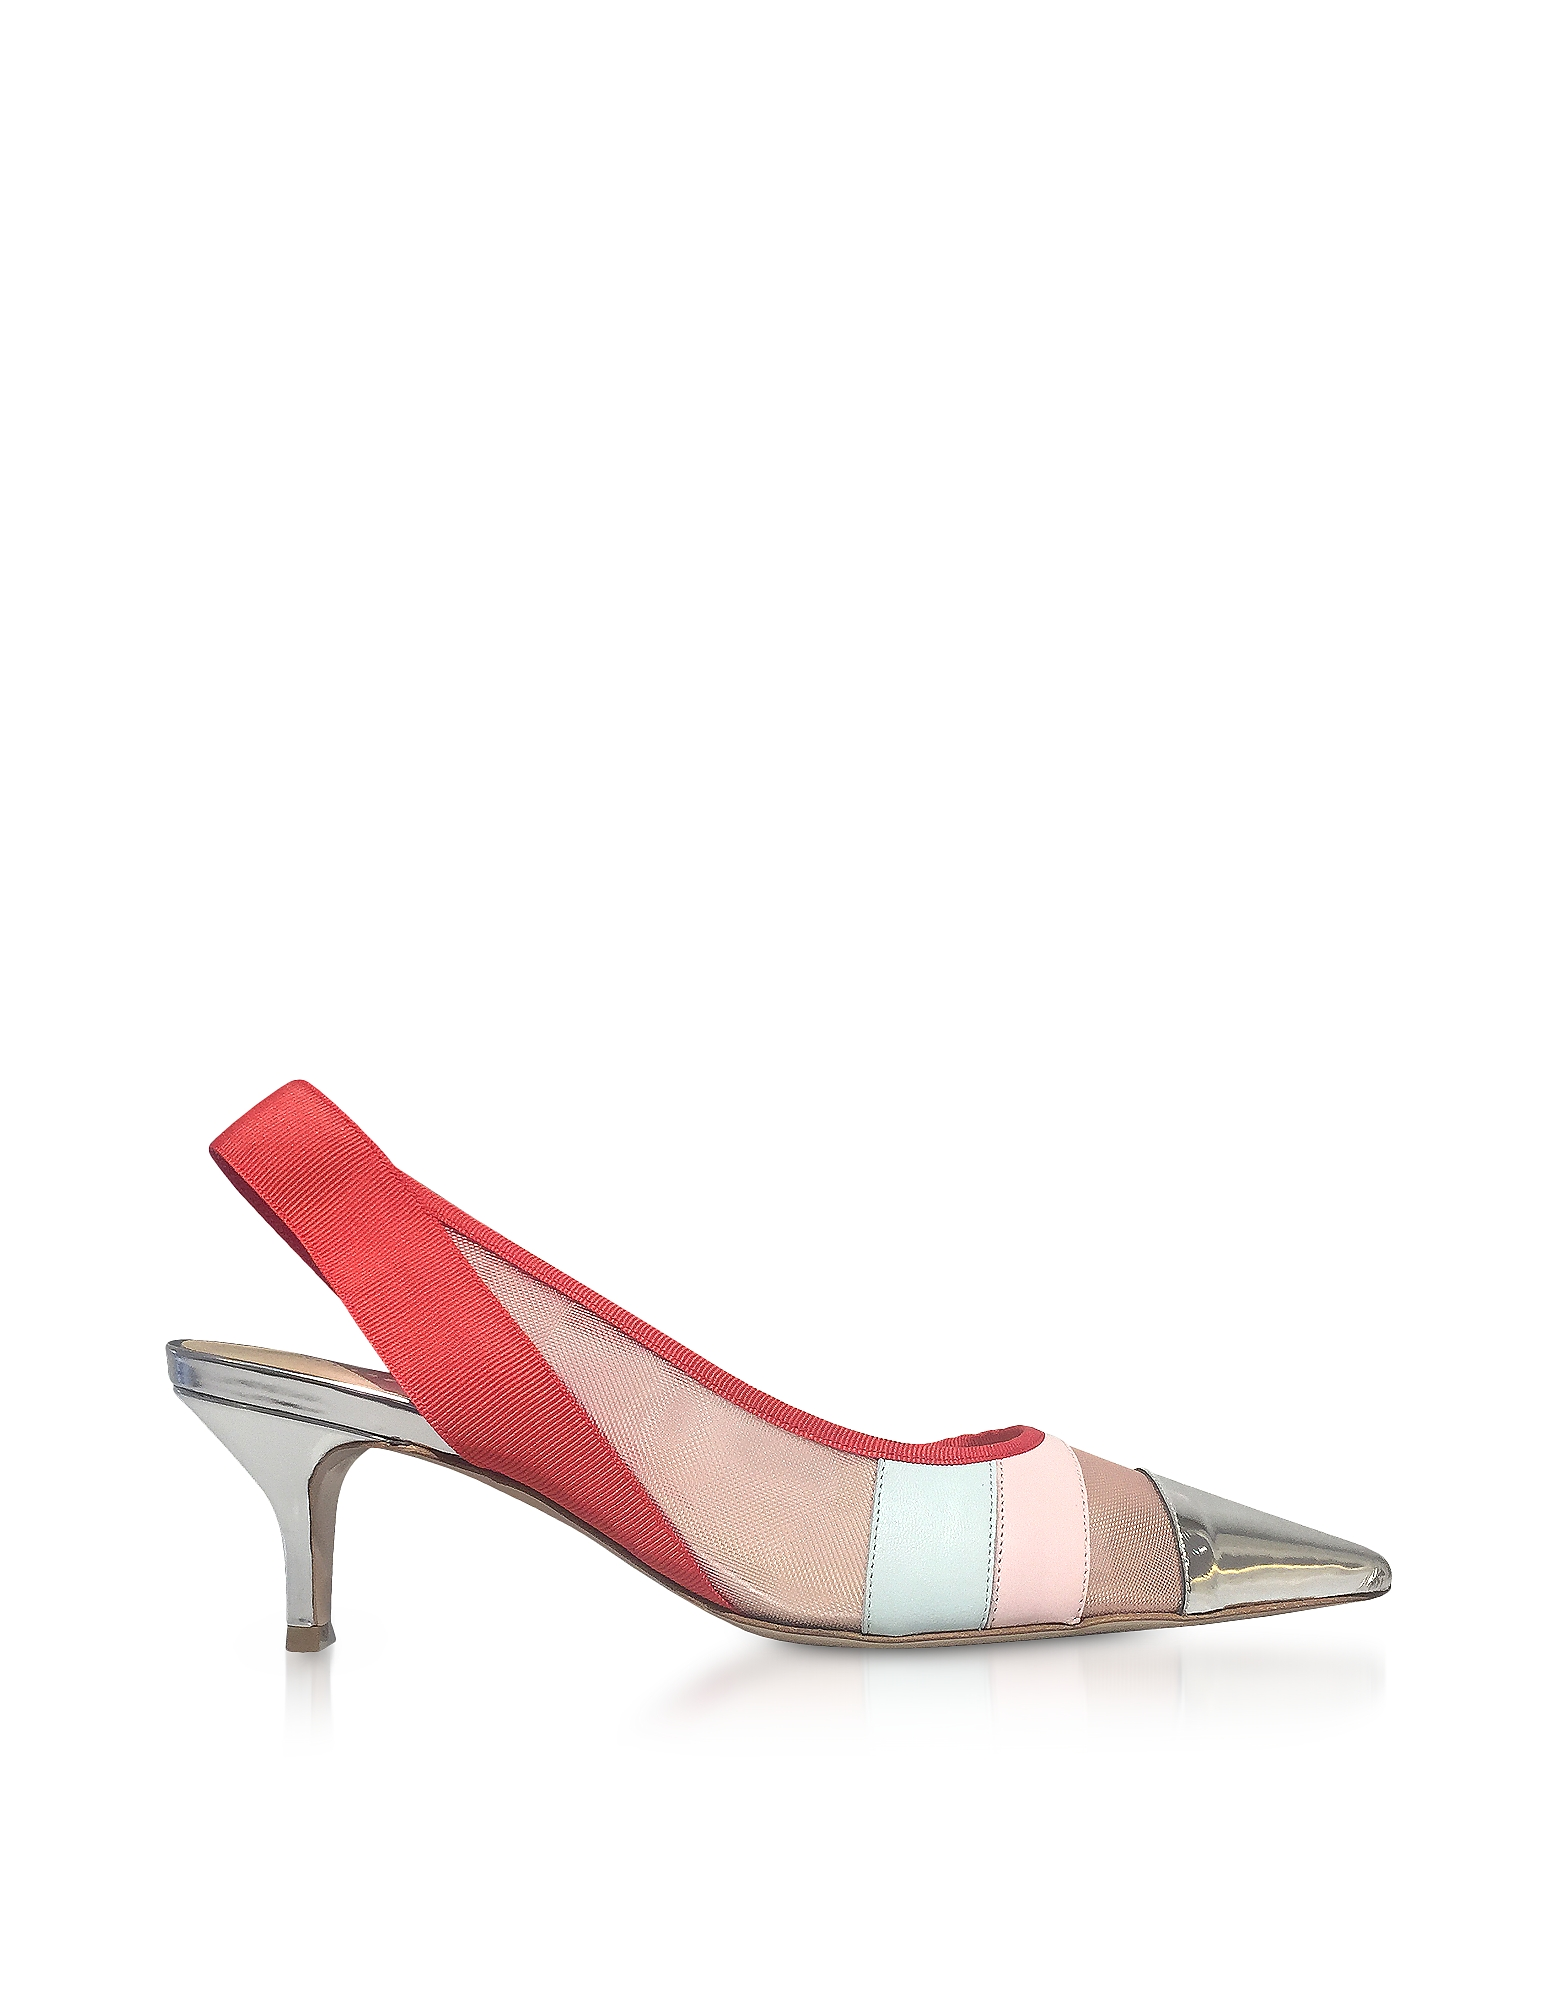 Dècolletè Slingback in Pelle Color Block e Nylon Trasparente